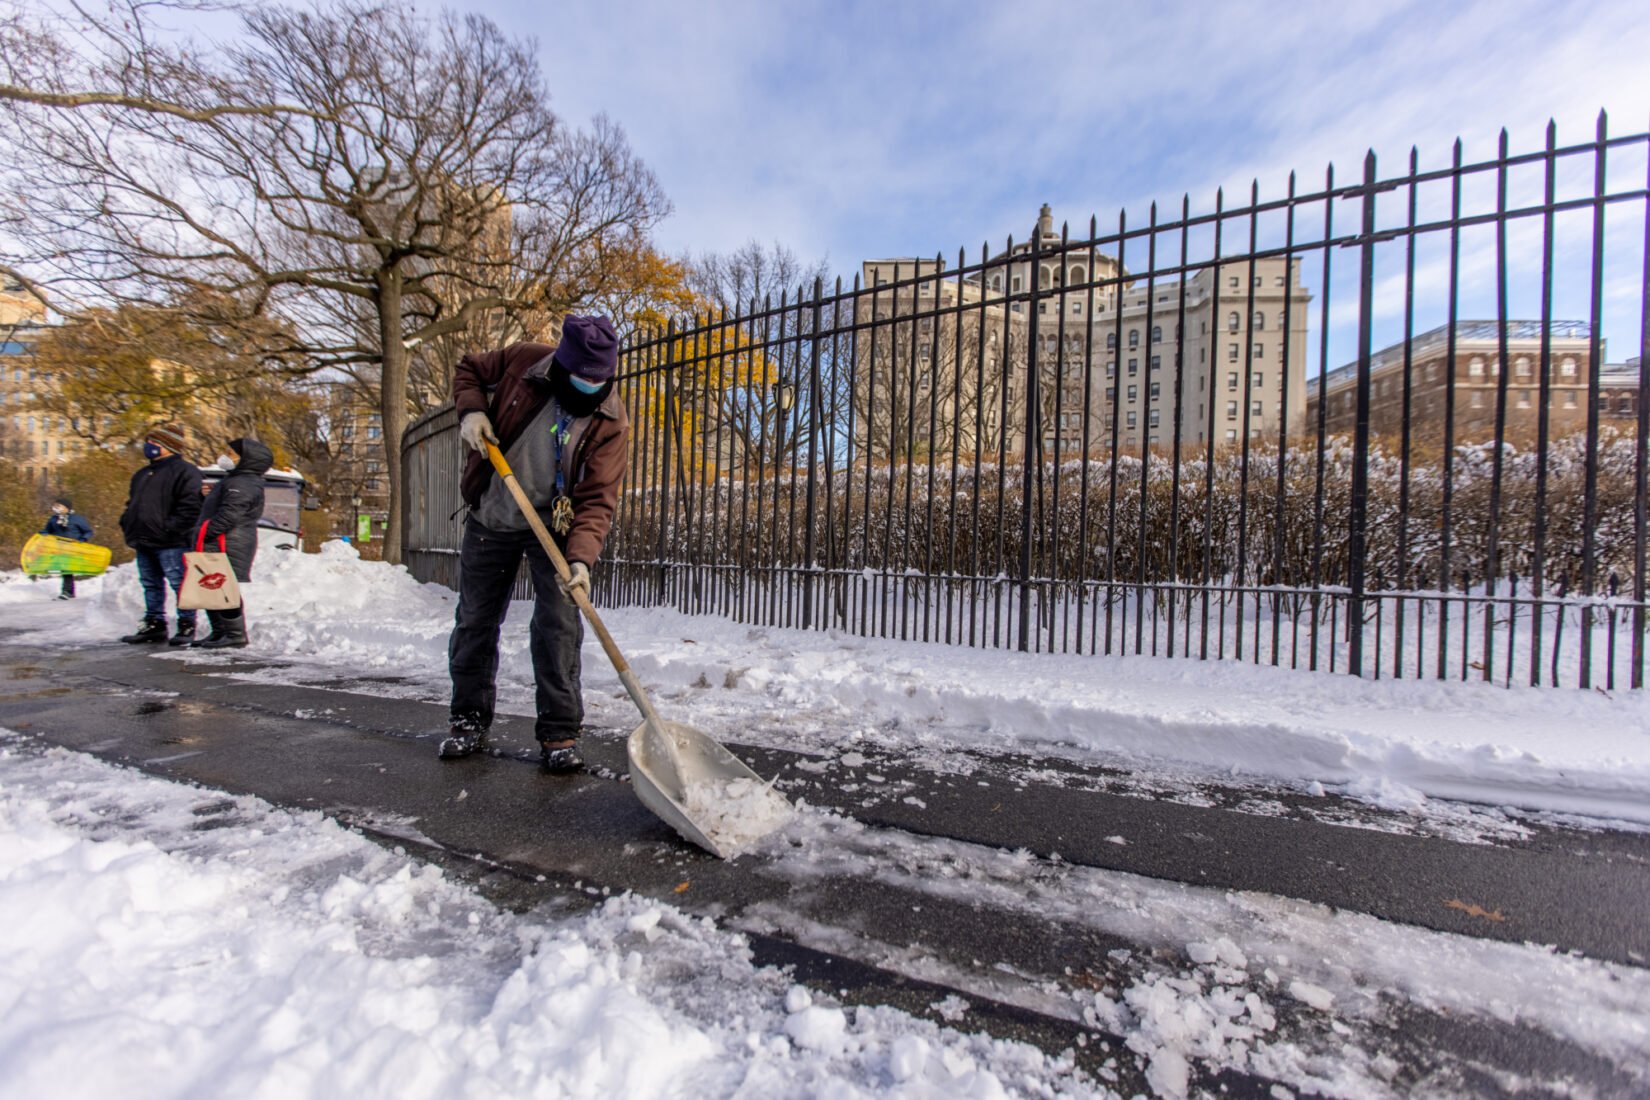 A conservancy staff member clears a path of snow on a bright winter day